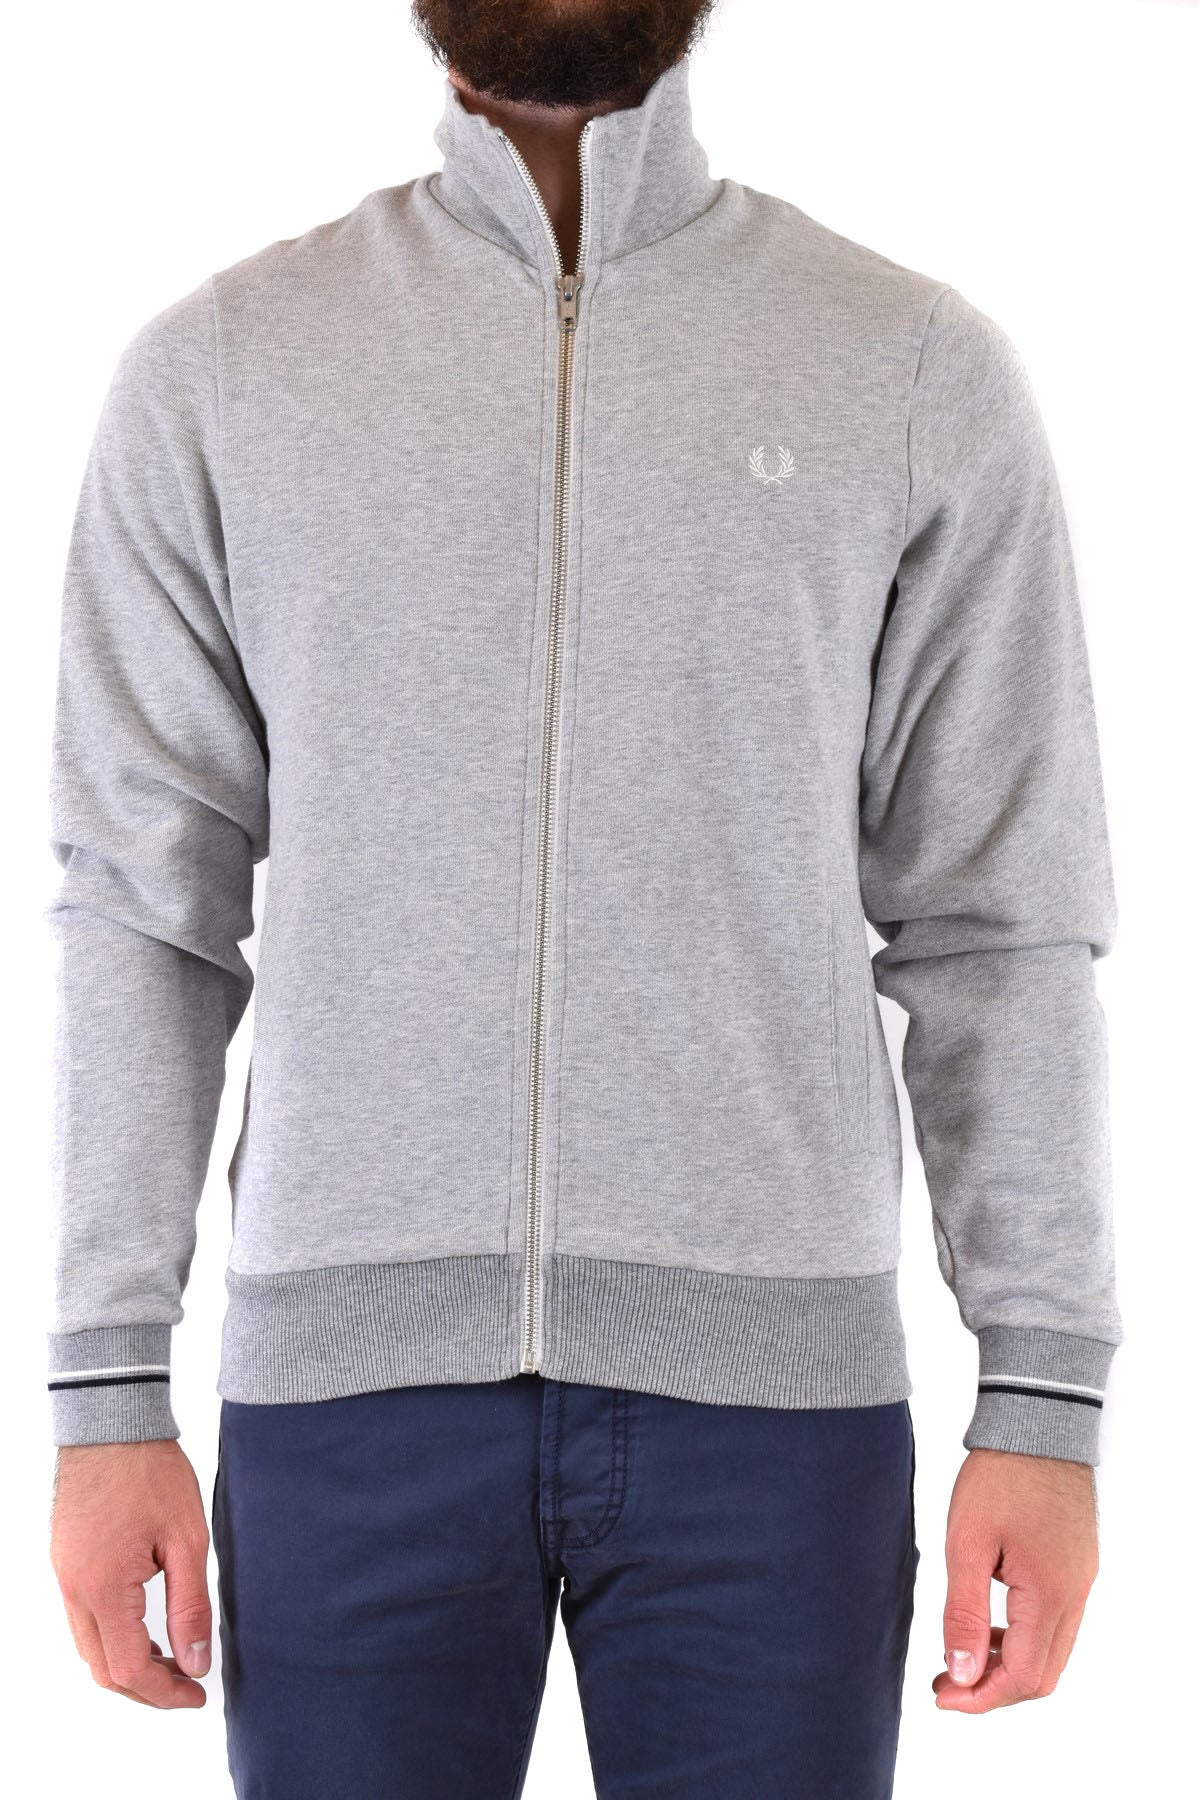 Sweatshirt Fred Perry-Men's Fashion - Men's Clothing - Hoodies & Sweatshirts-XS-Product Details Terms: New With LabelClothing Type: SweatshirtsMain Color: GraySeason: Fall / WinterMade In: ChinaGender: ManSize: IntComposition: Cotton 100%Year: 2020Manufacturer Part Number: J3522 Col250-Keyomi-Sook